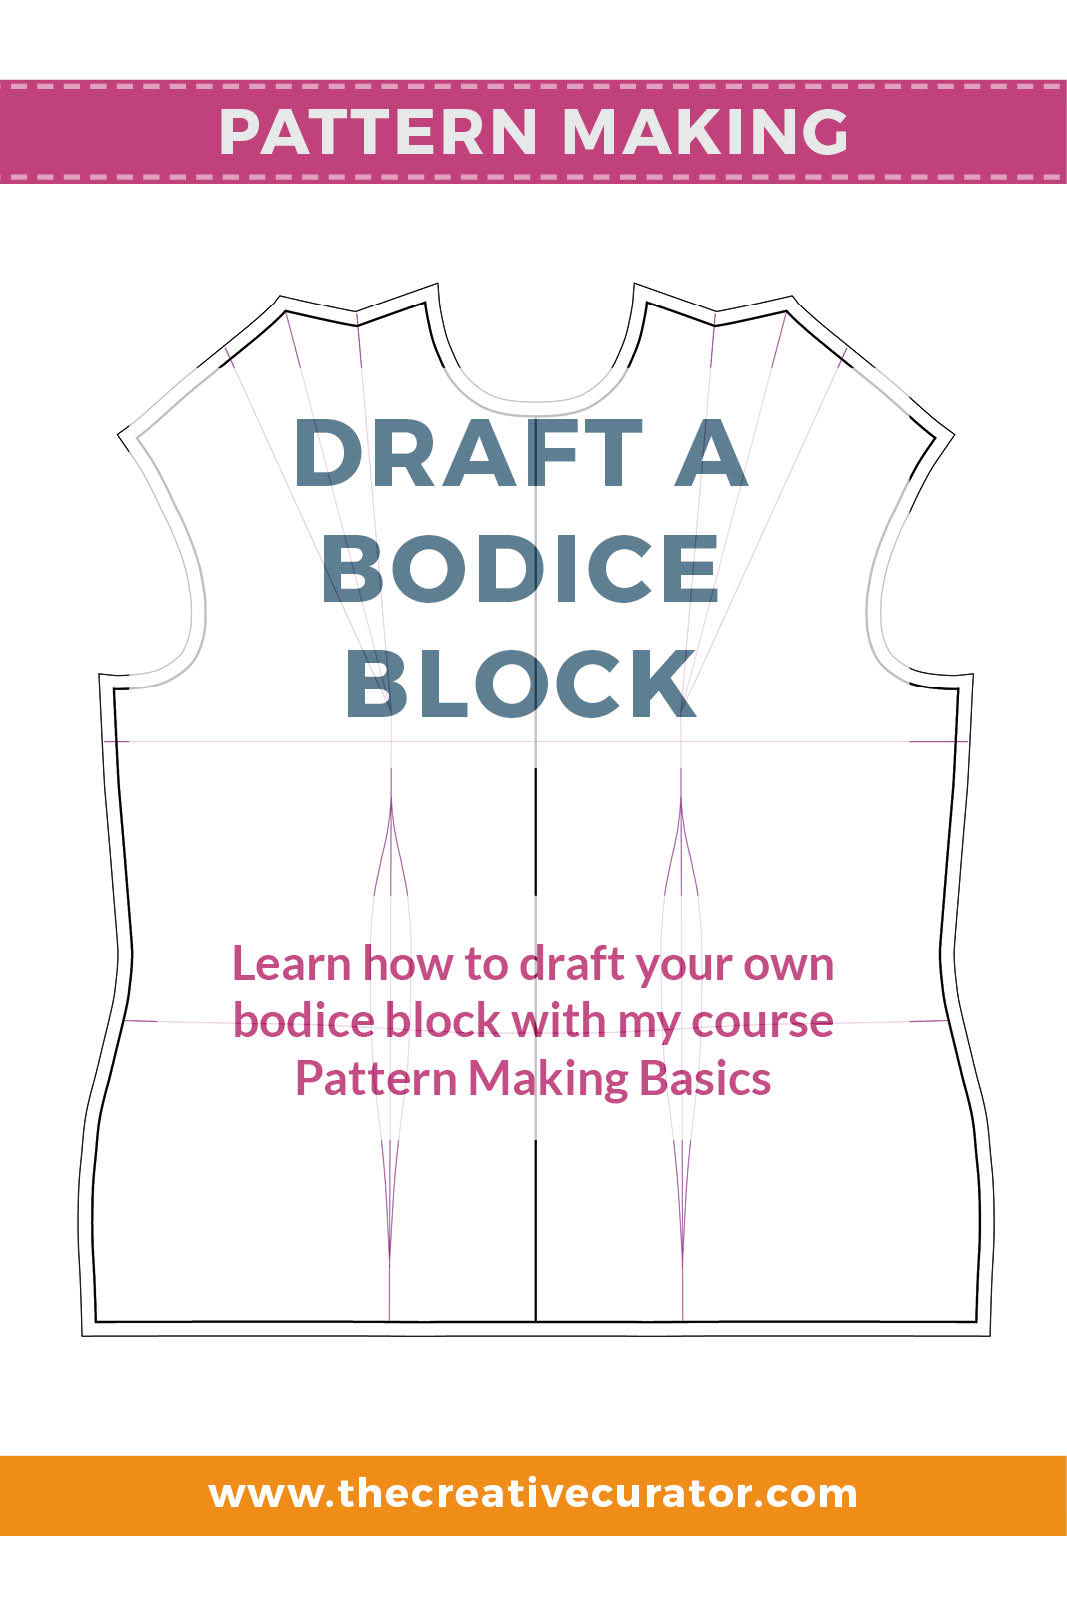 Learn how to draft a bodice block using your own measurements for a better fitting bodice sloper! - The Creative Creator #patternmakingbasics #patterndrafting #patternmaking #sewingprojects